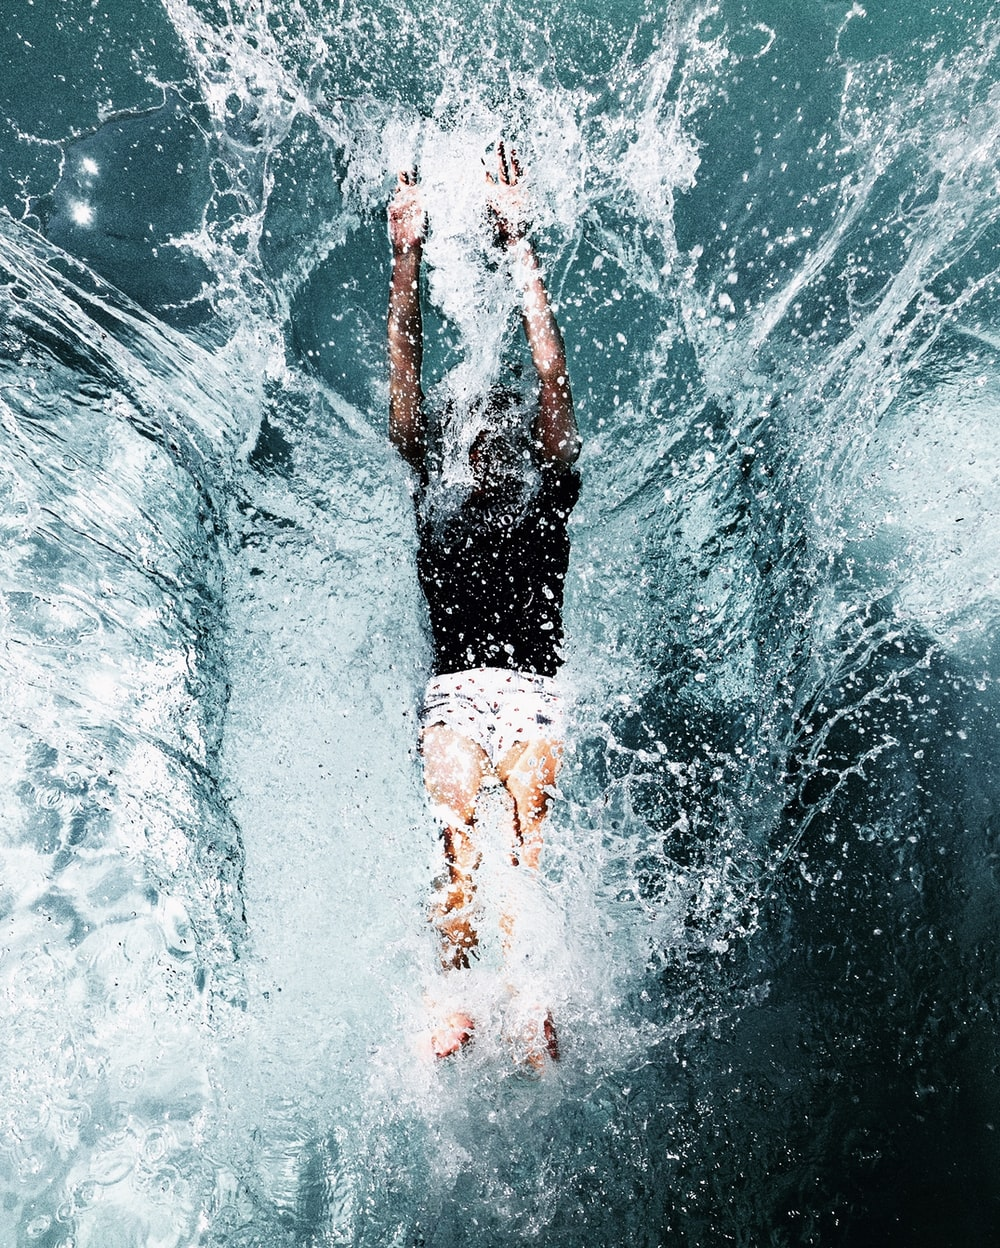 man in black shorts and white shirt in water